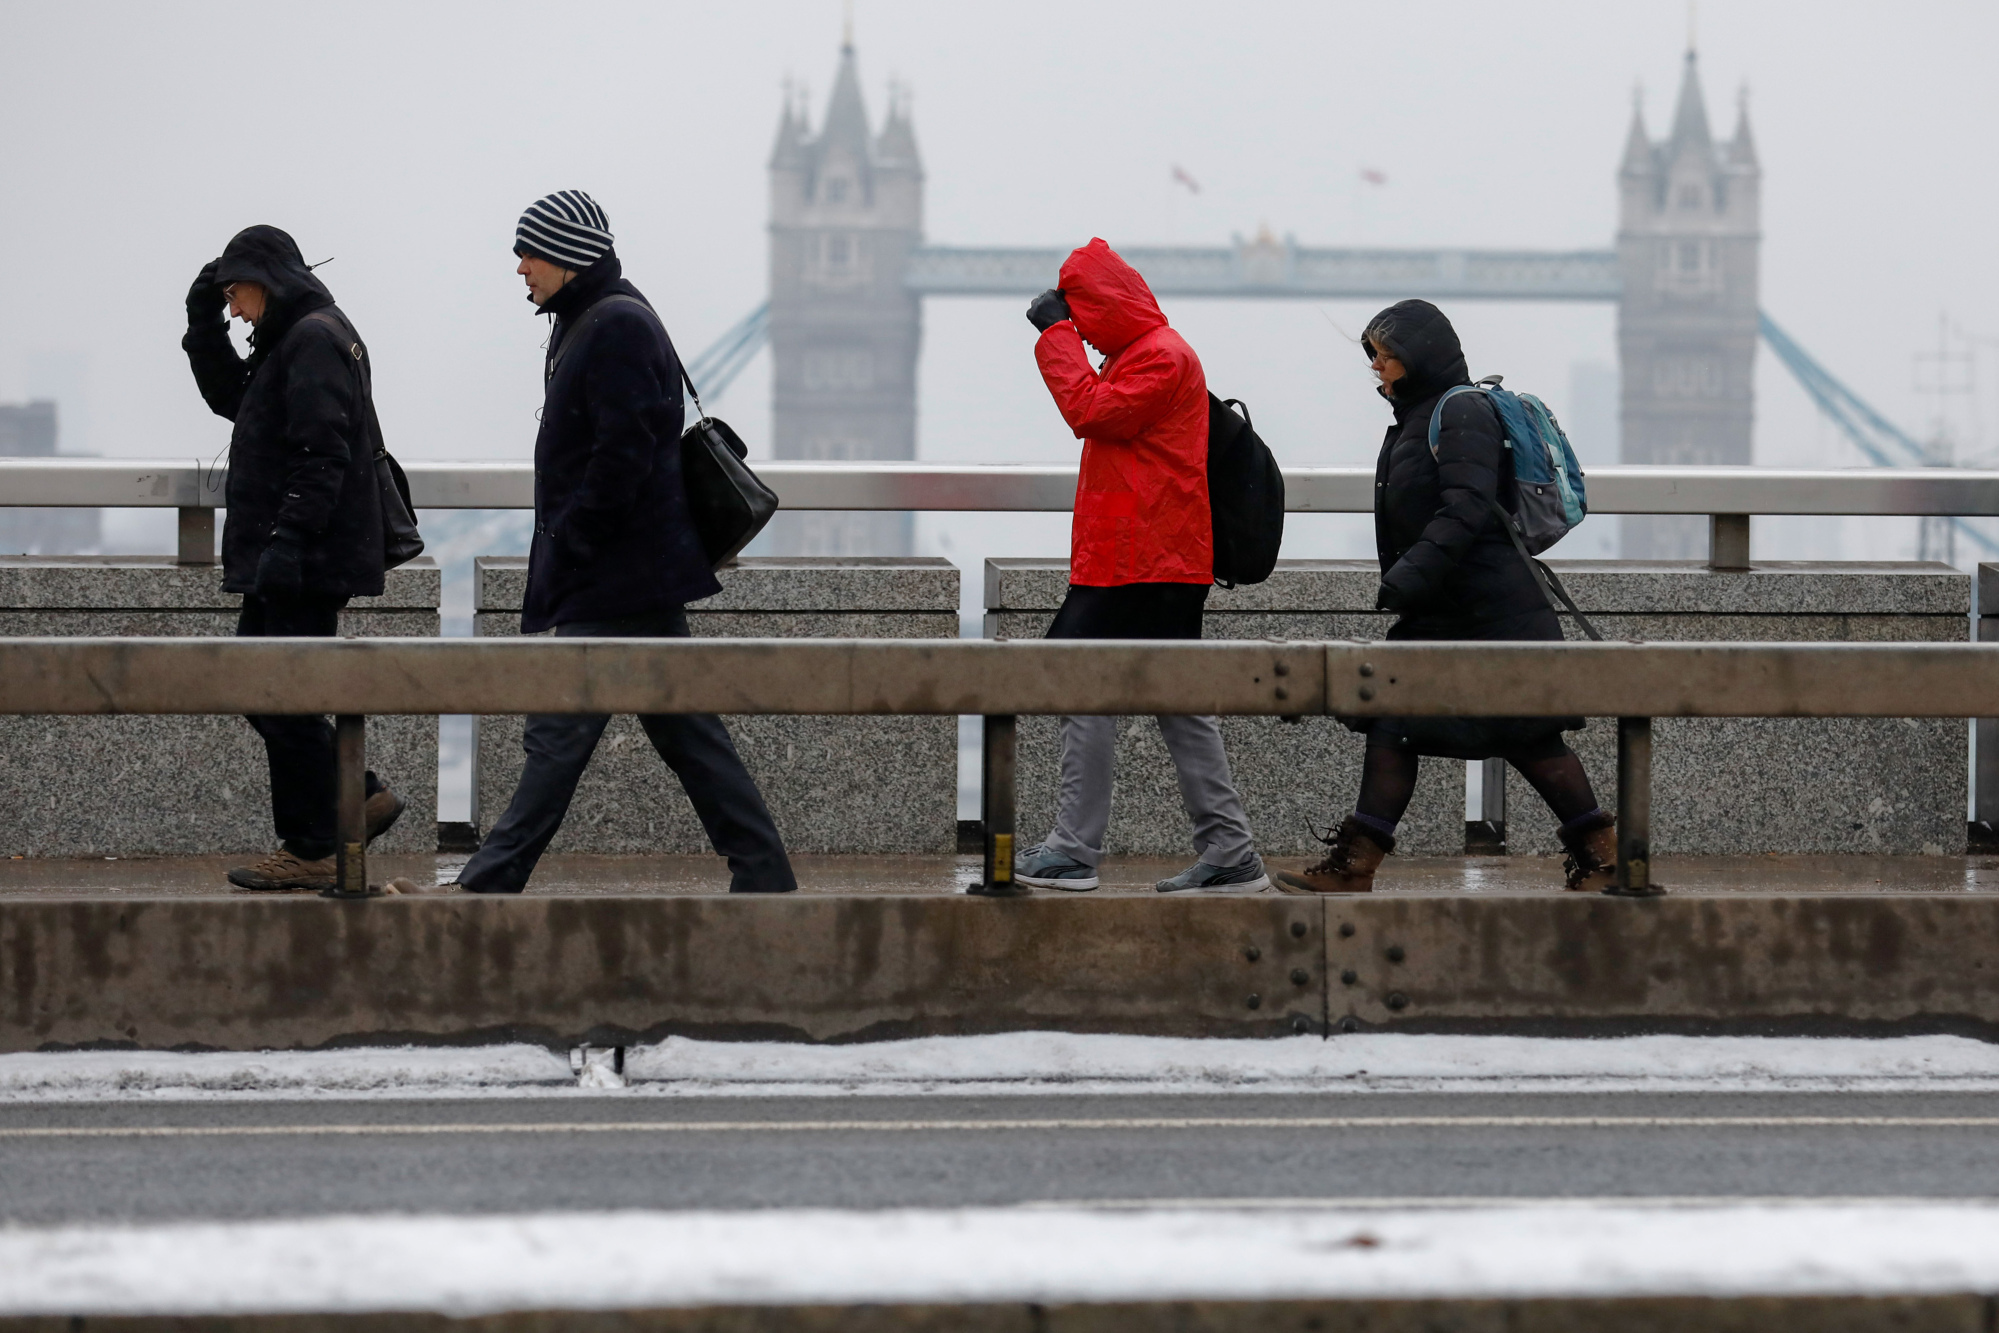 Commuters make their way across London Bridge in the snow in London, U.K., on Thursday, March 1, 2018.  Photographer: Luke MacGregor/Bloomberg